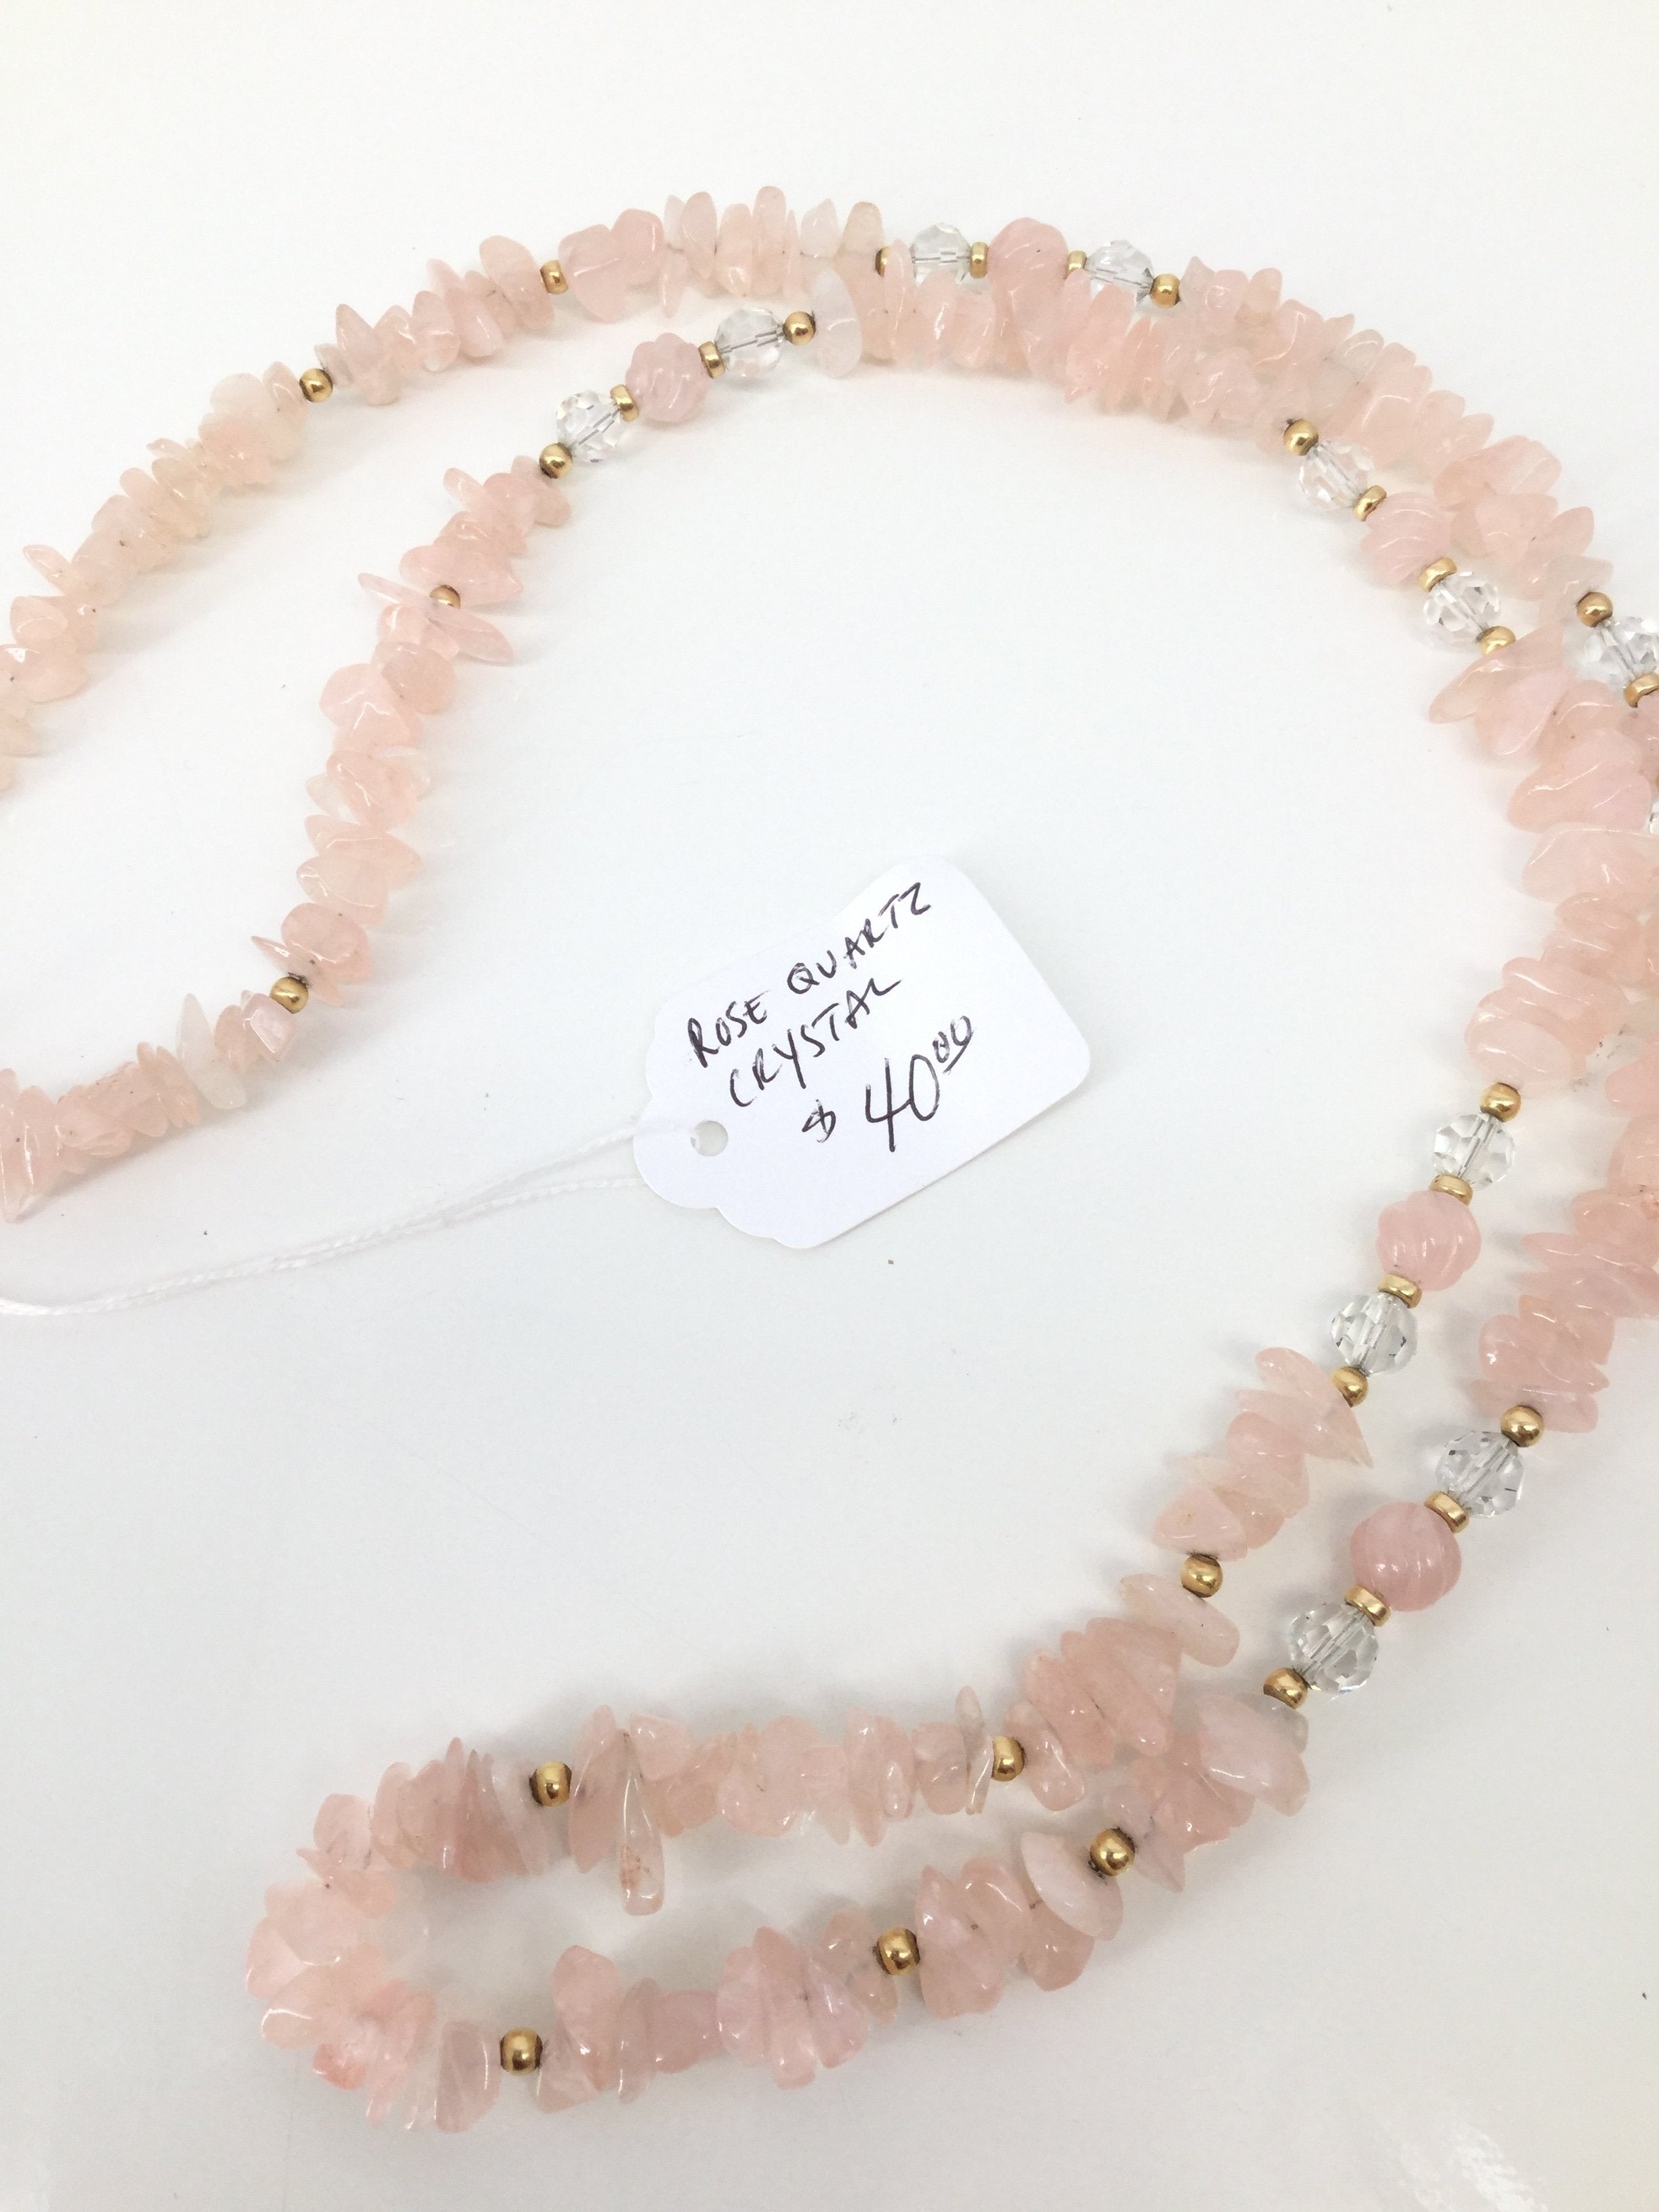 Cmd Necklace - <P>NEW! LONG ROSE QUARTZ CRYSTAL NECKLACE. PINK WITH CLEAR BEADS AND SMALL GOLD BEADS AS WELL. GOLD TWIST CLOSURE.</P>